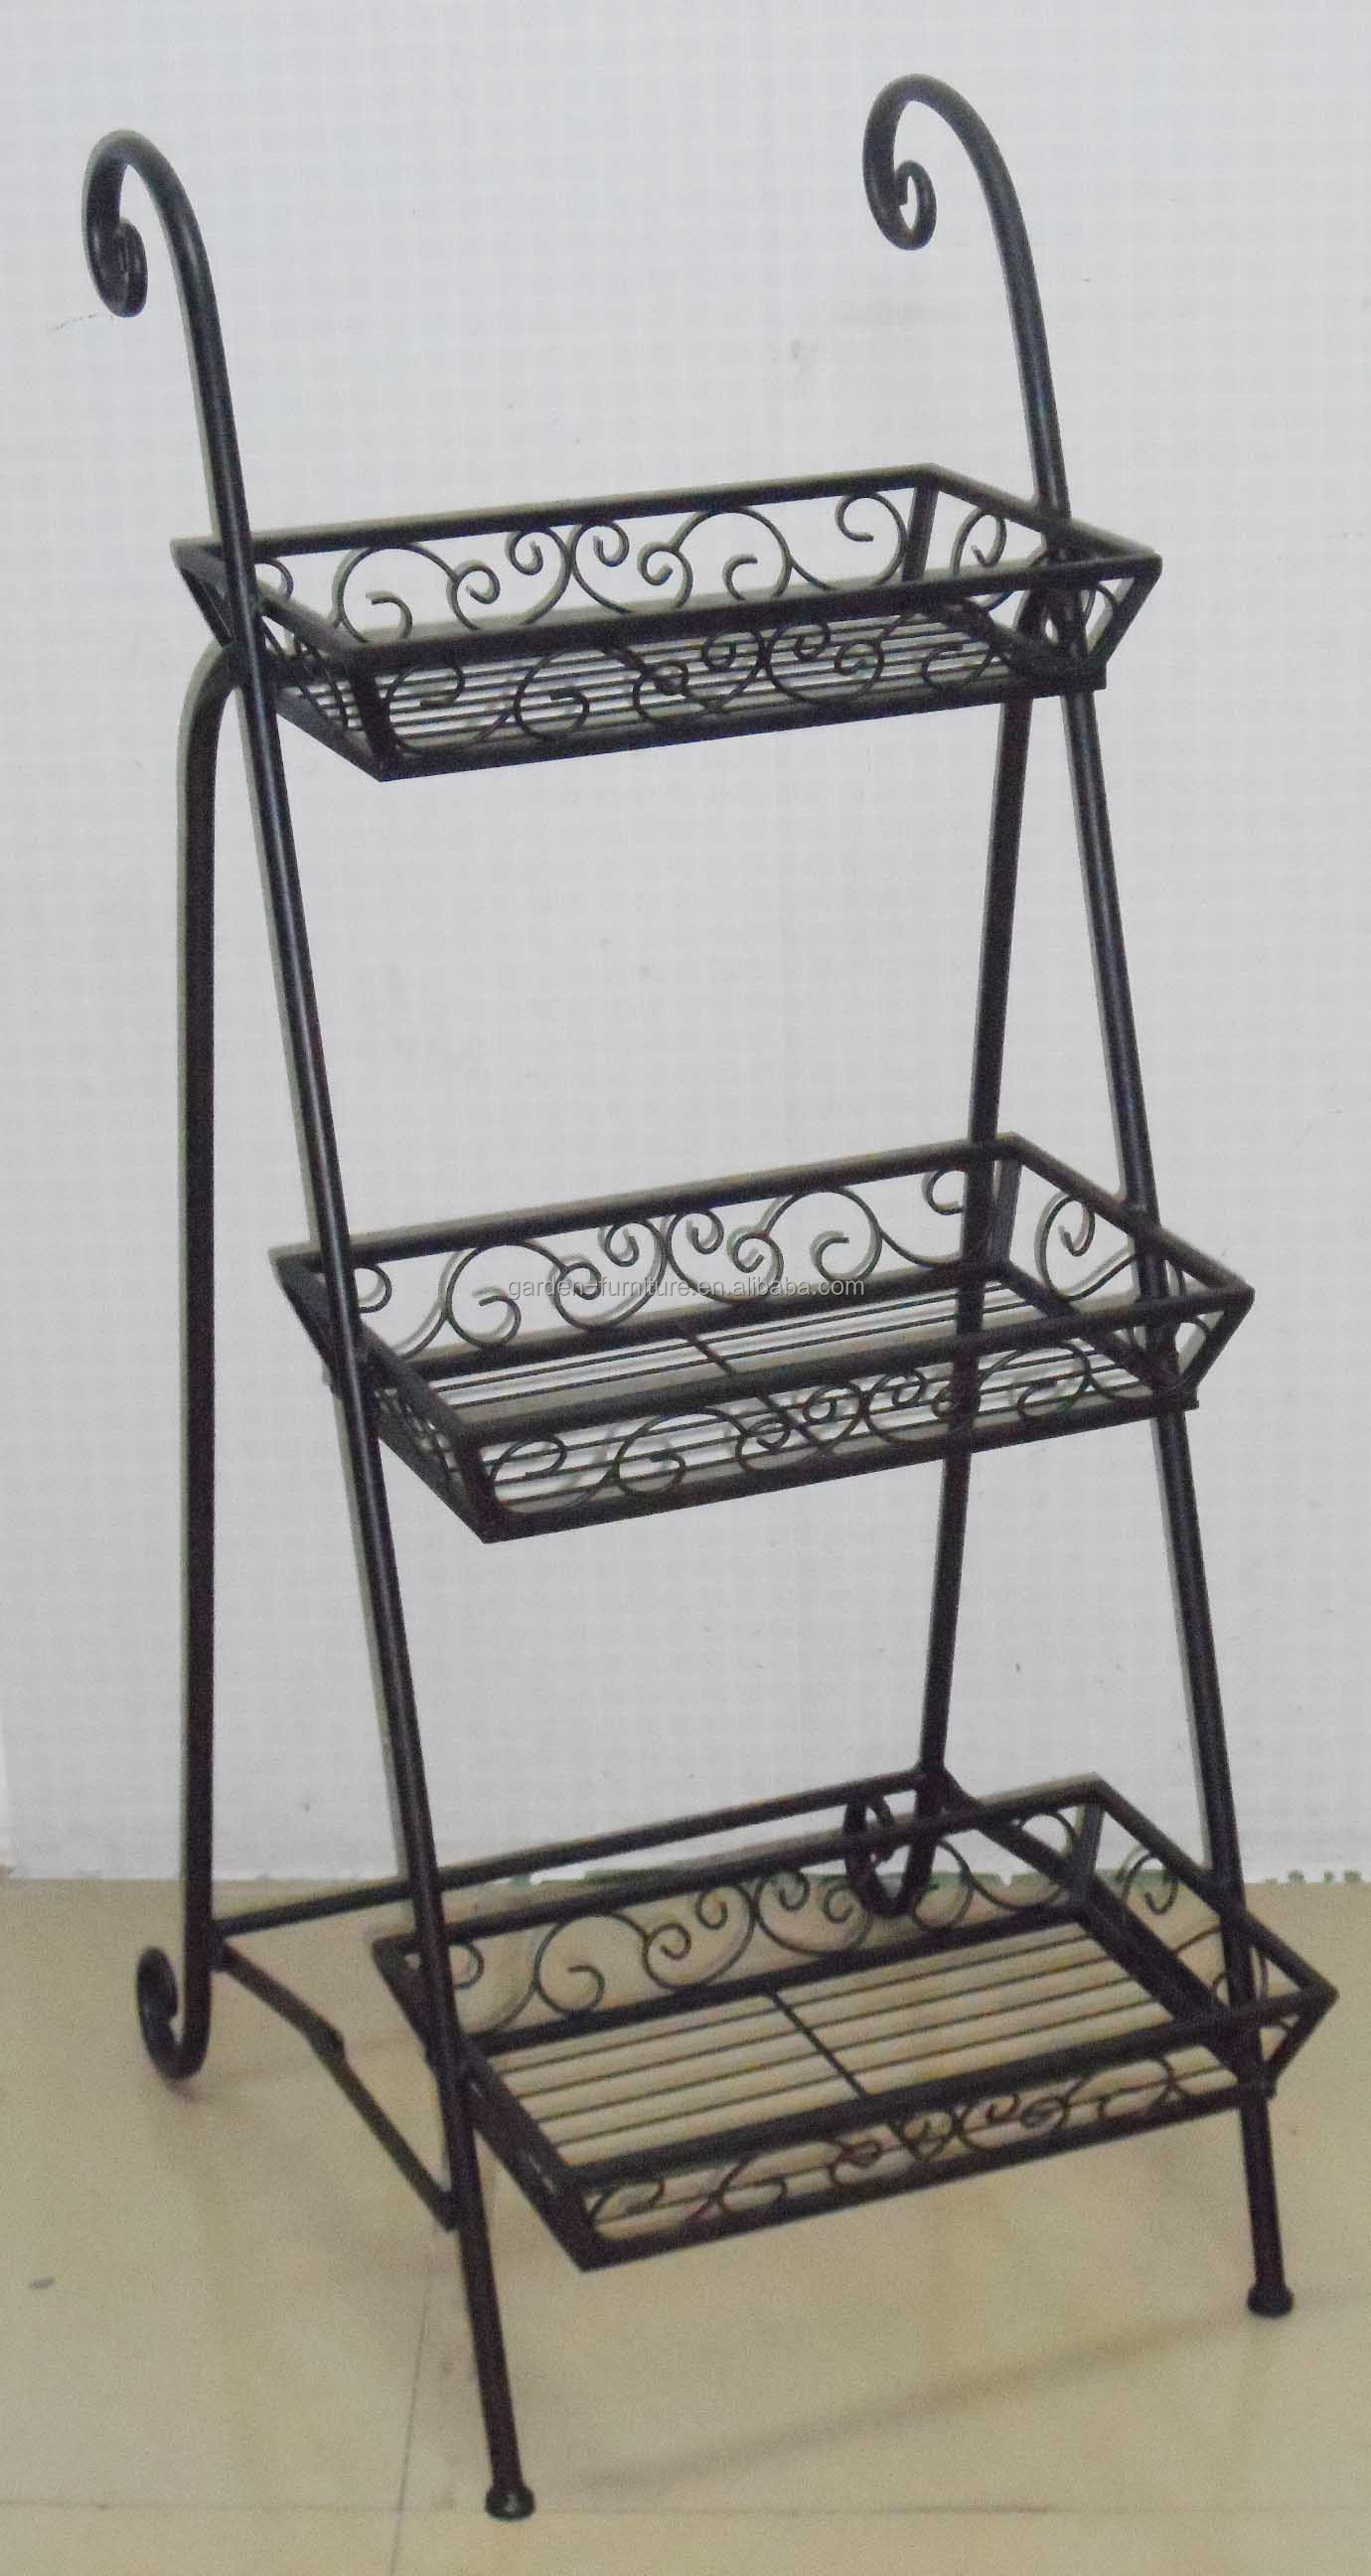 Wrought iron outdoor decor - Handmade Crafts Gift Home Garden Decor Metal Ornate 3 Basket Plant Holder Wrought Iron Flower Pot Stands Buy Flower Pot Stand Iron Flower Pot Stand